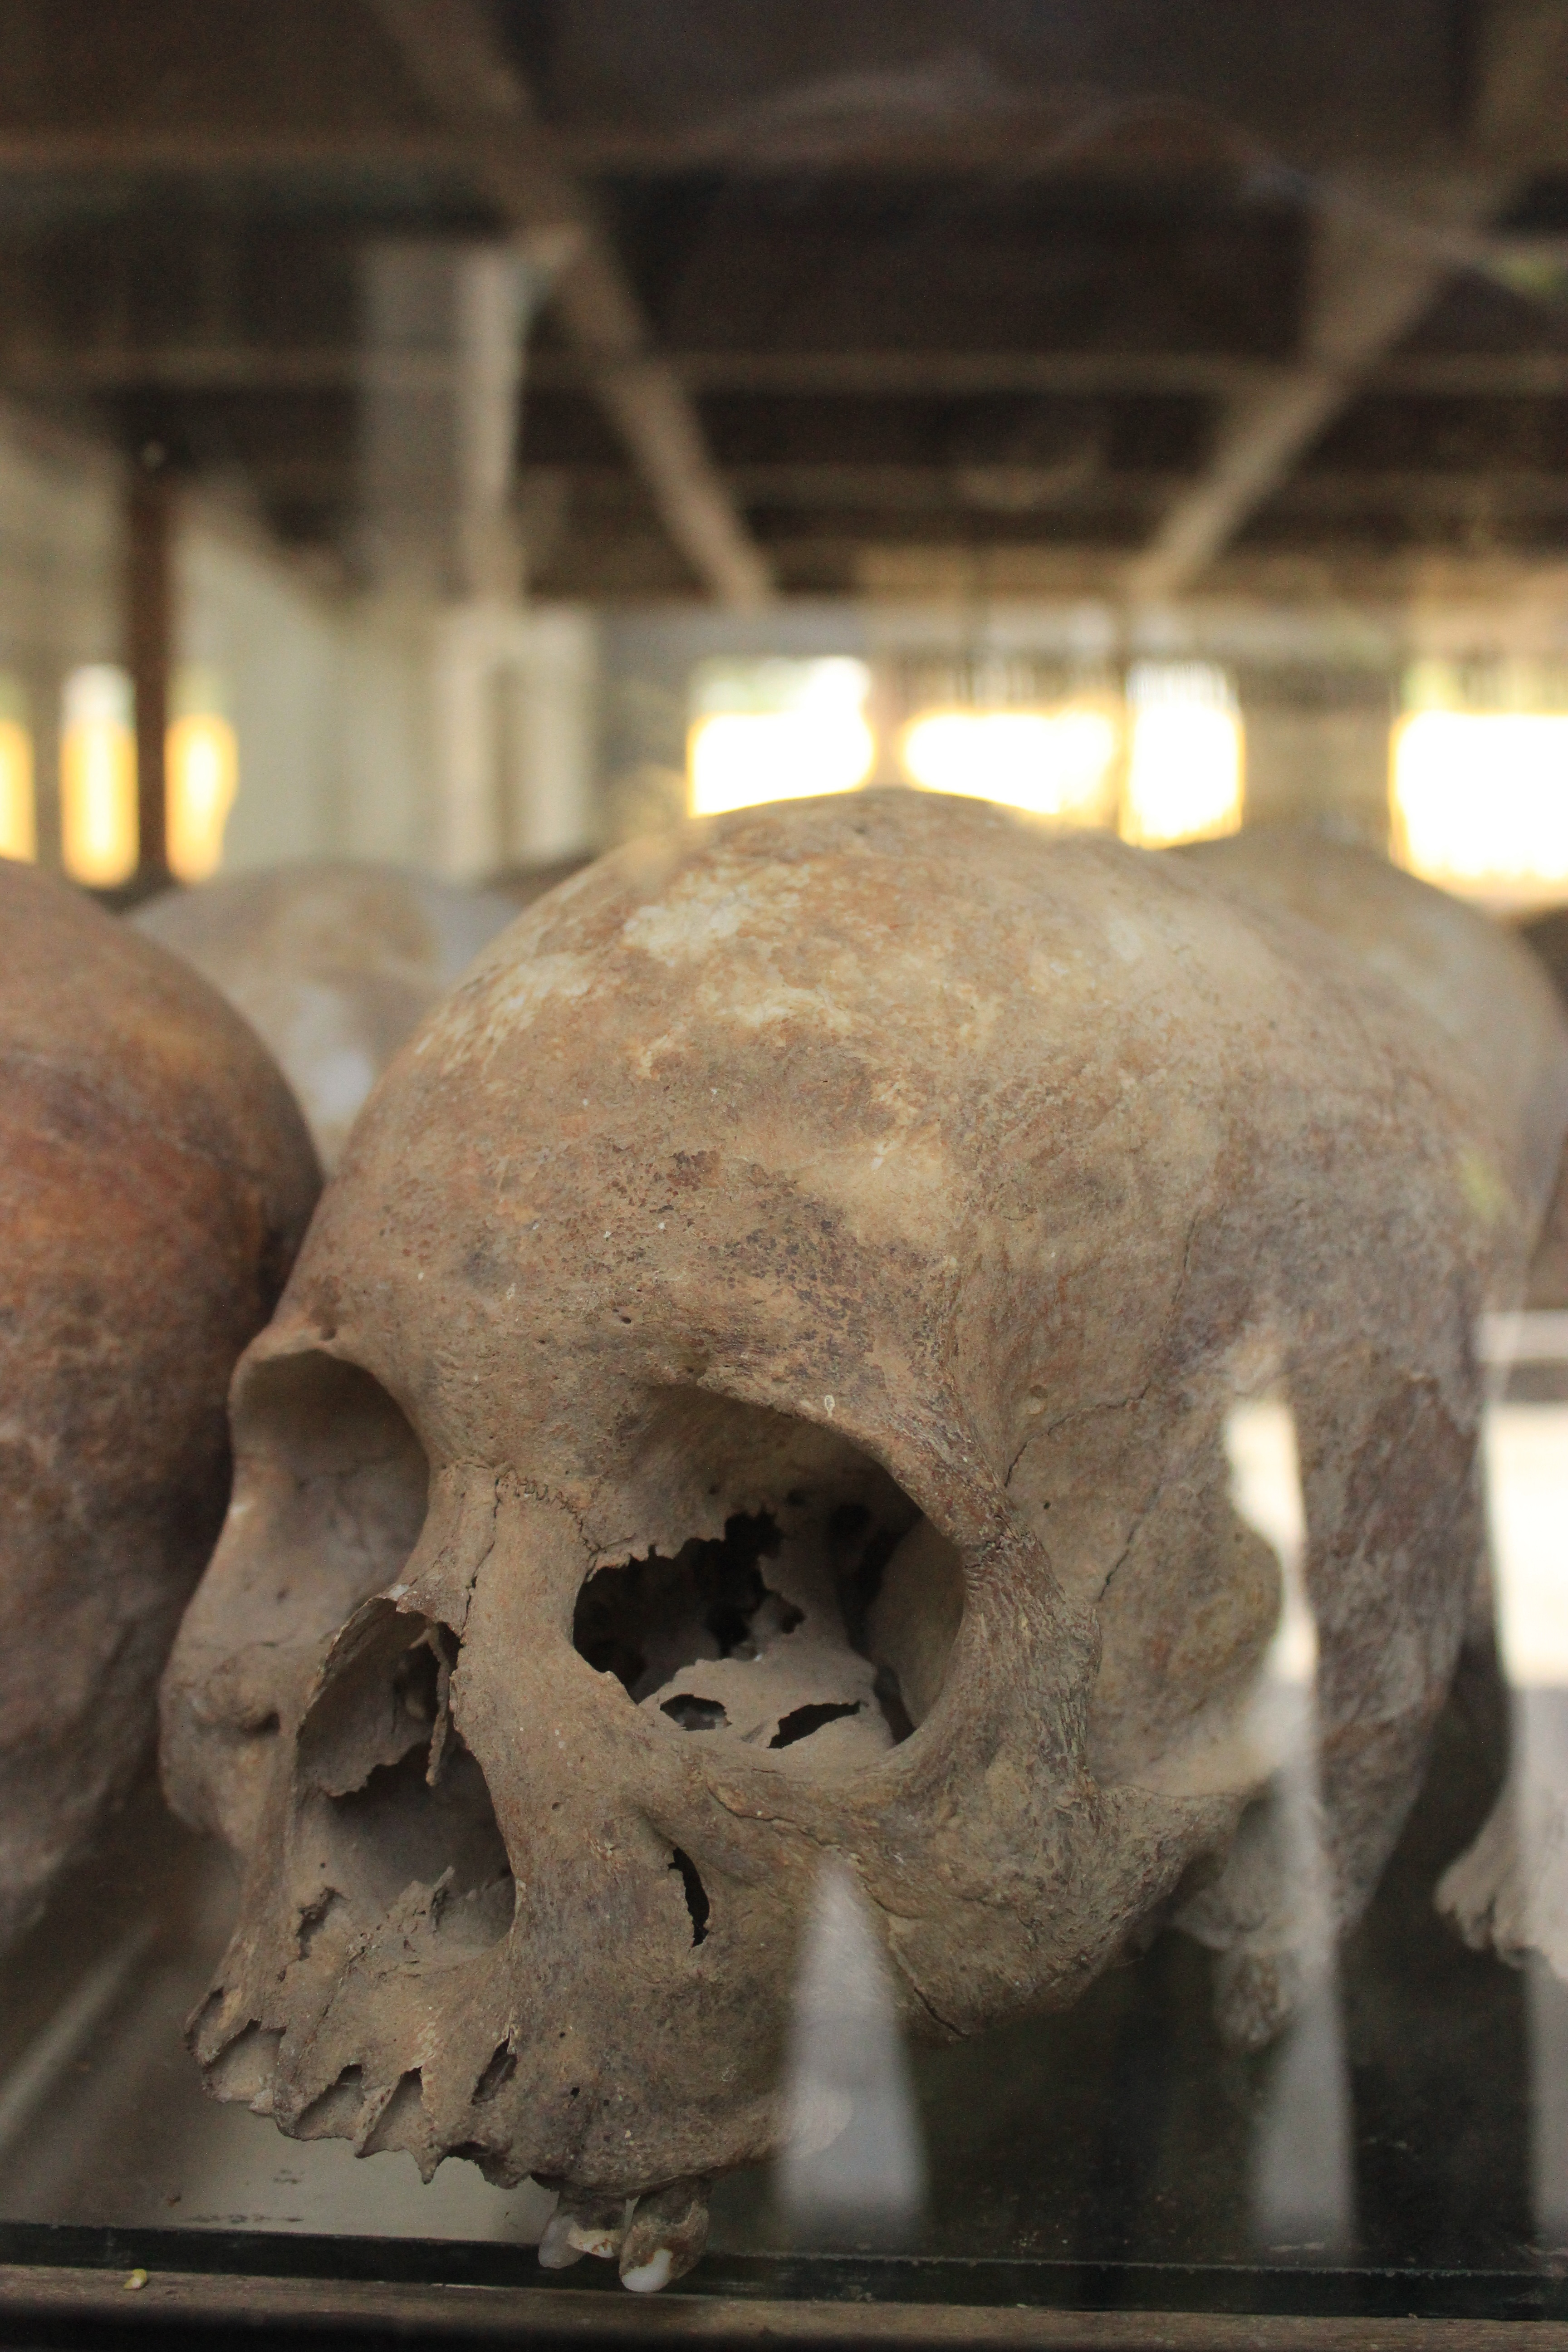 Genocidal Tendencies: Fractured Cambodia & the Khmer Rouge (Part I